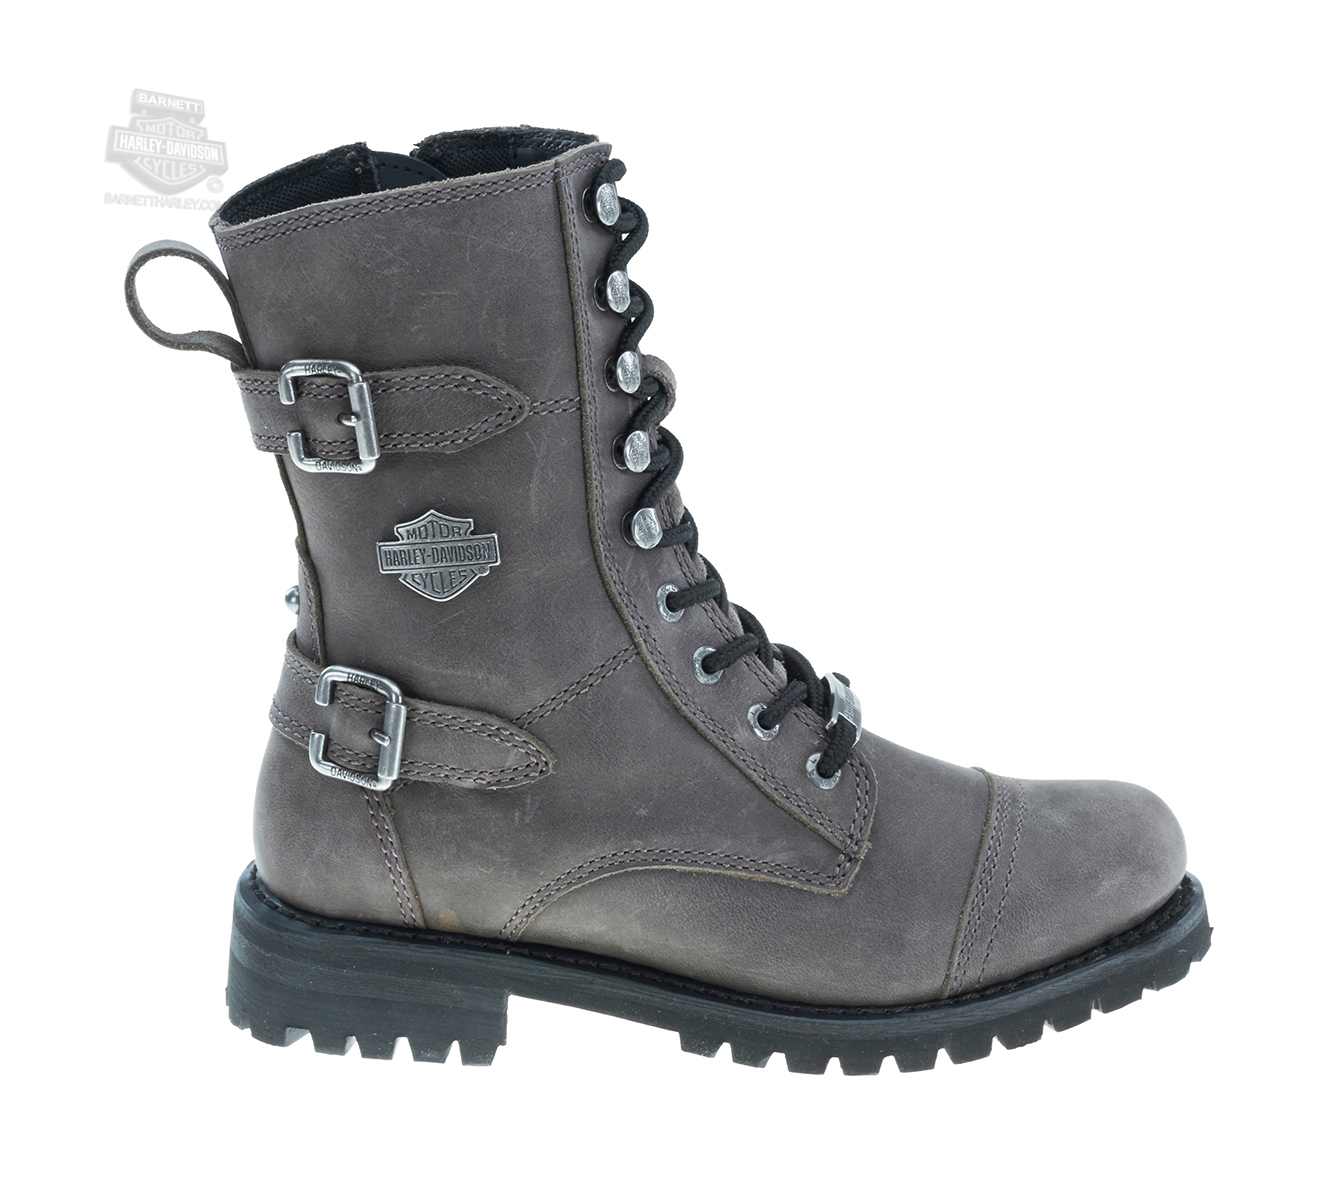 efd1ba4e114 83855 - Harley-Davidson® Womens Balsa Grey Leather Mid Cut Boot ...